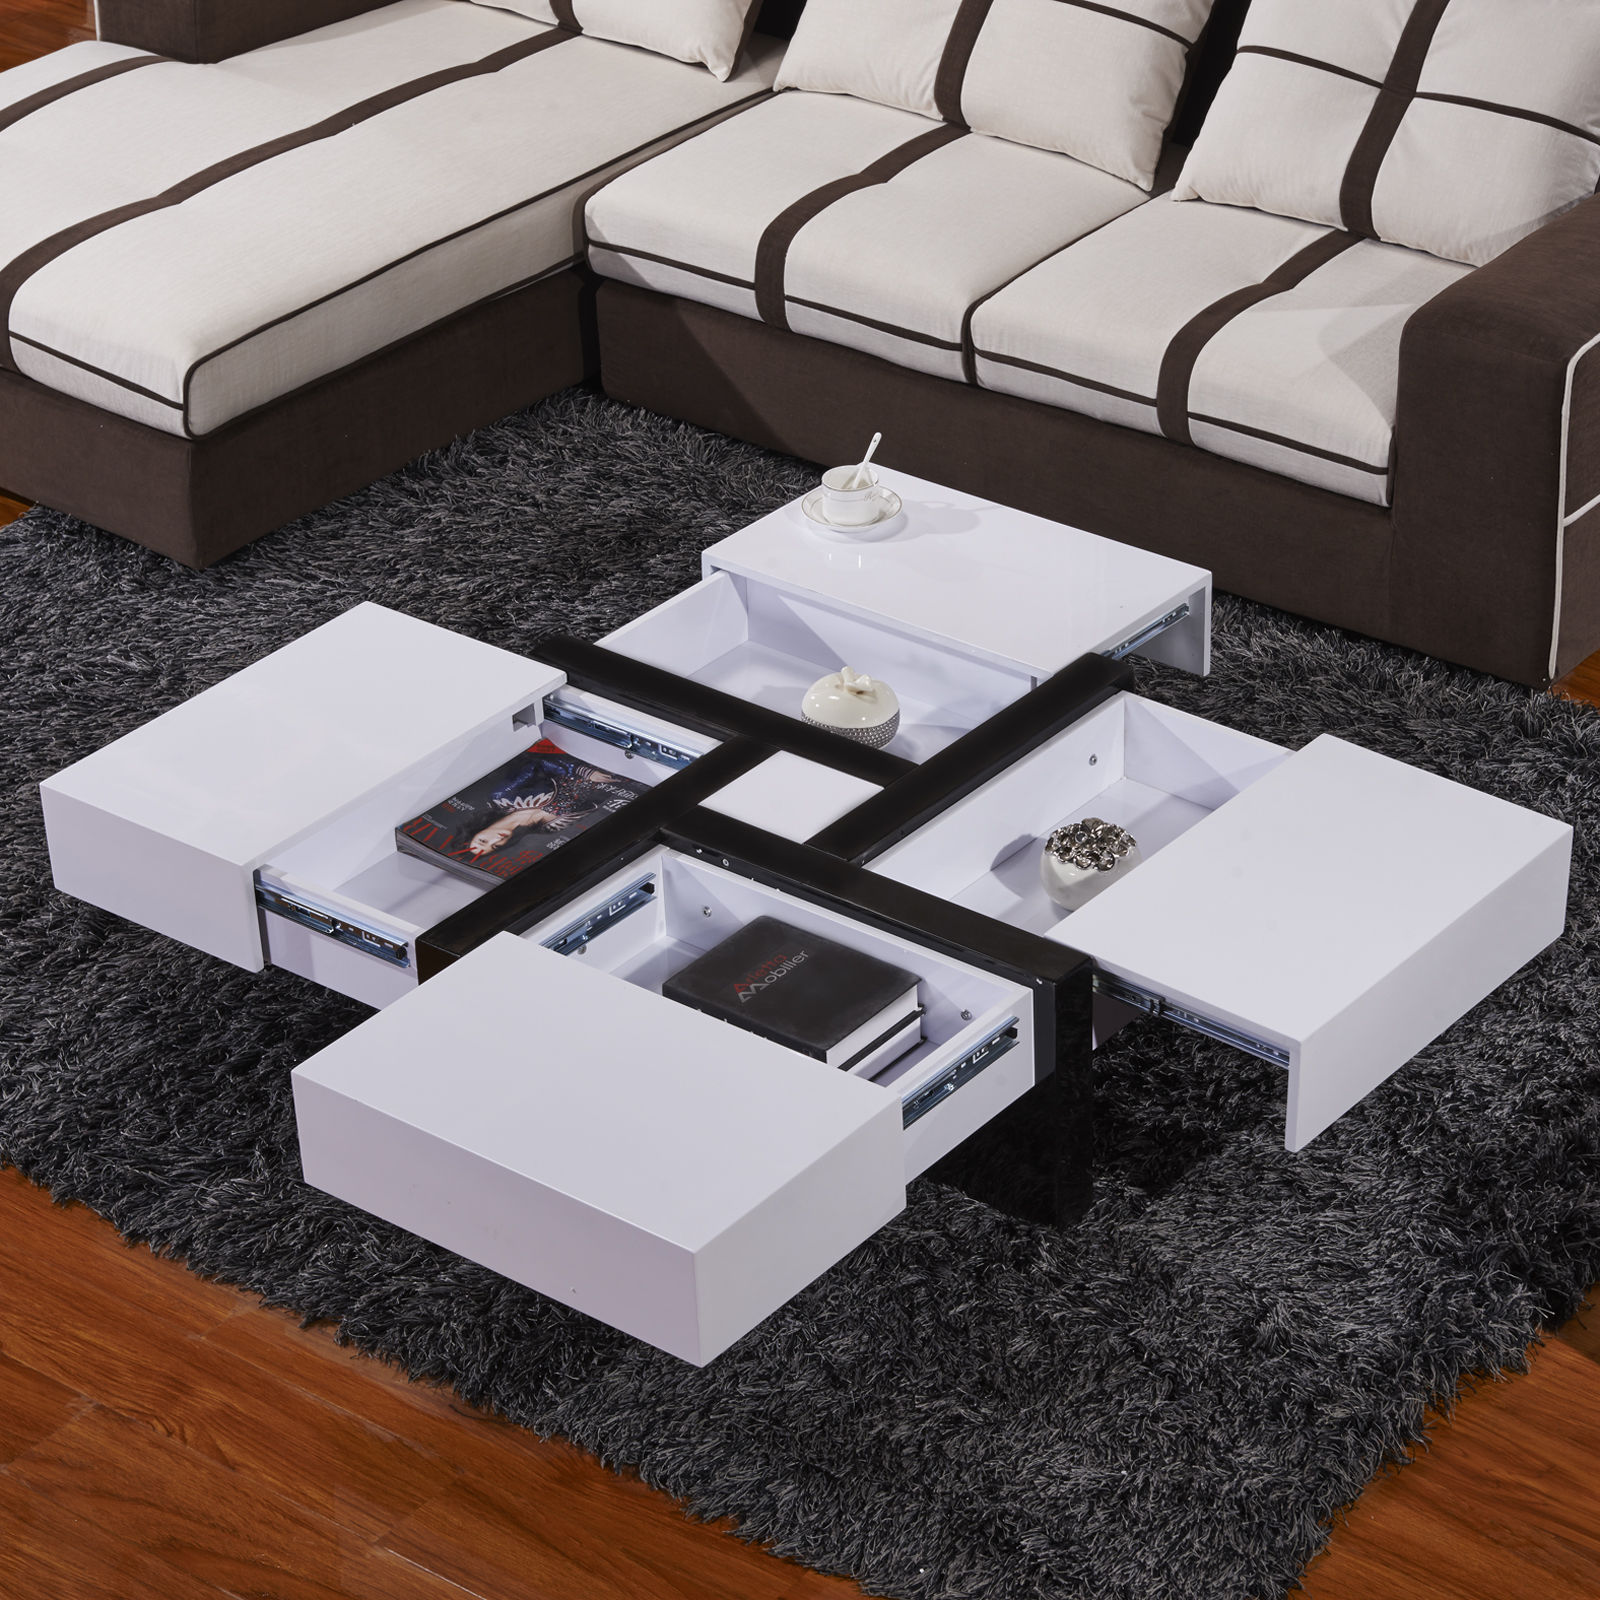 NEW DESIGN HIGH GLOSS WHITE COFFEE TABLE WITH 4 DRAWERS BUILT IN